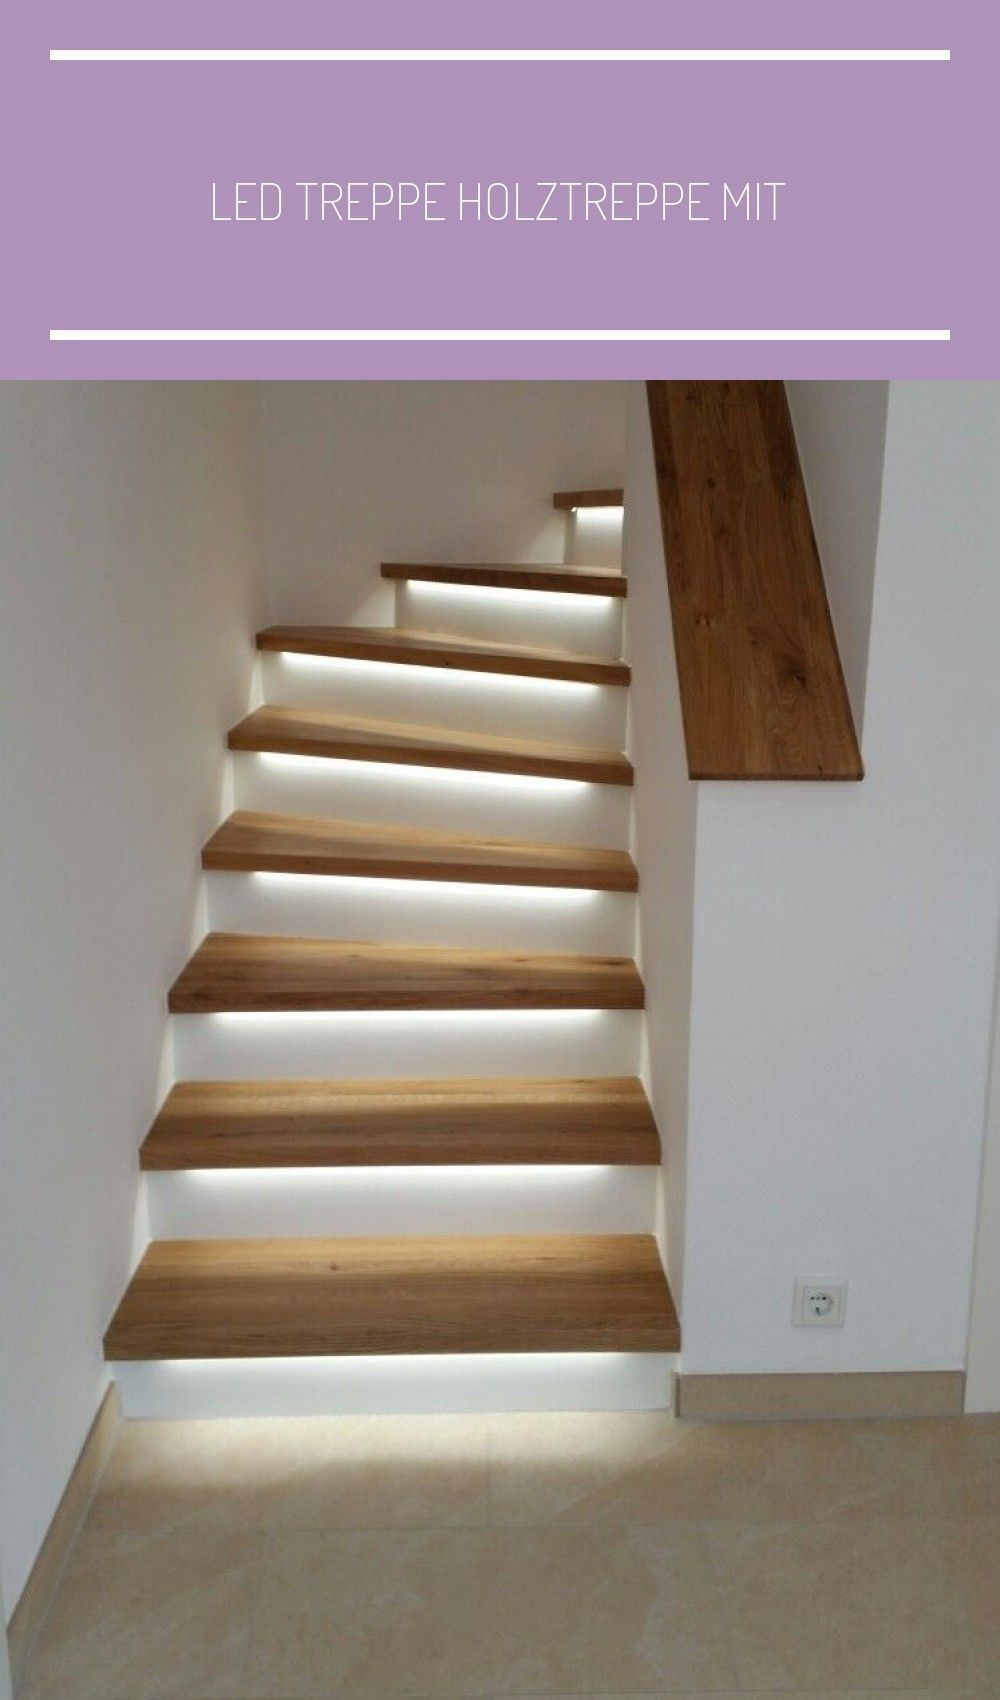 Led Treppe Holztreppe Mit Beleuchtung Renovierung Haus Ideen Flur Beleuchtung Flur Haus Holztreppe Ideen Led Mit Renovie In 2020 Stairs Home Wooden Staircases